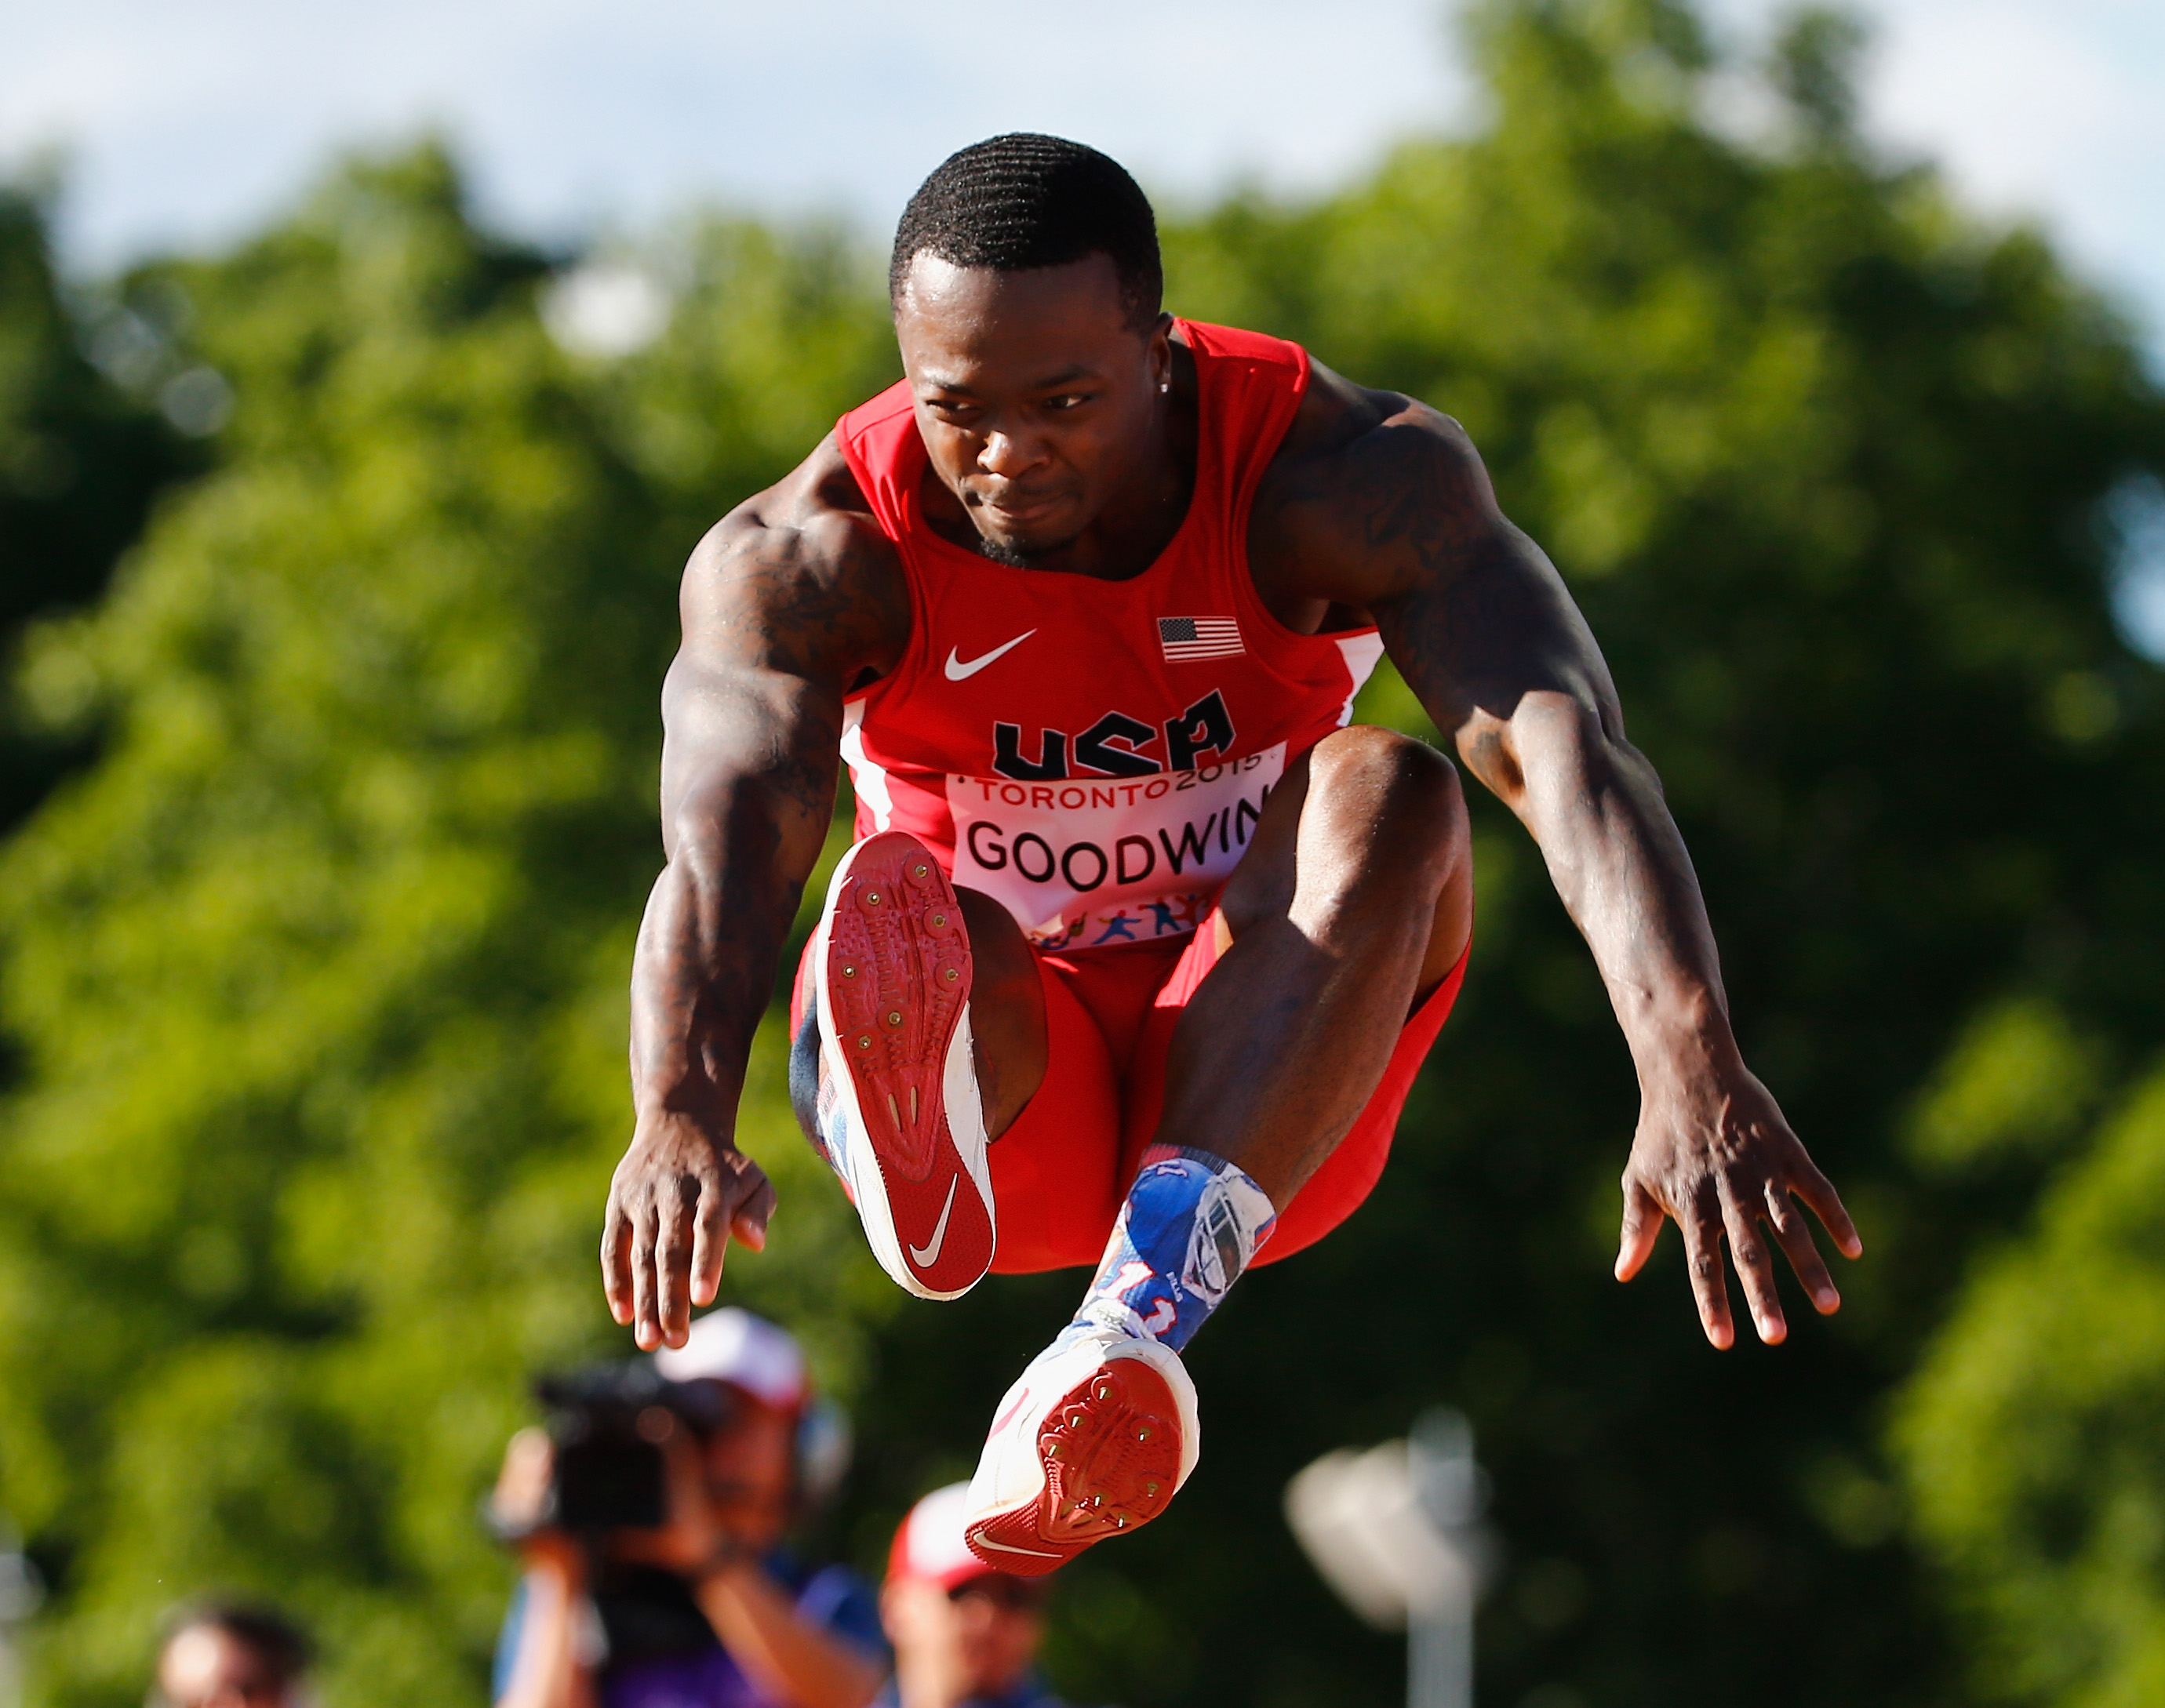 Toronto 2015 Pan Am Games - Day 12